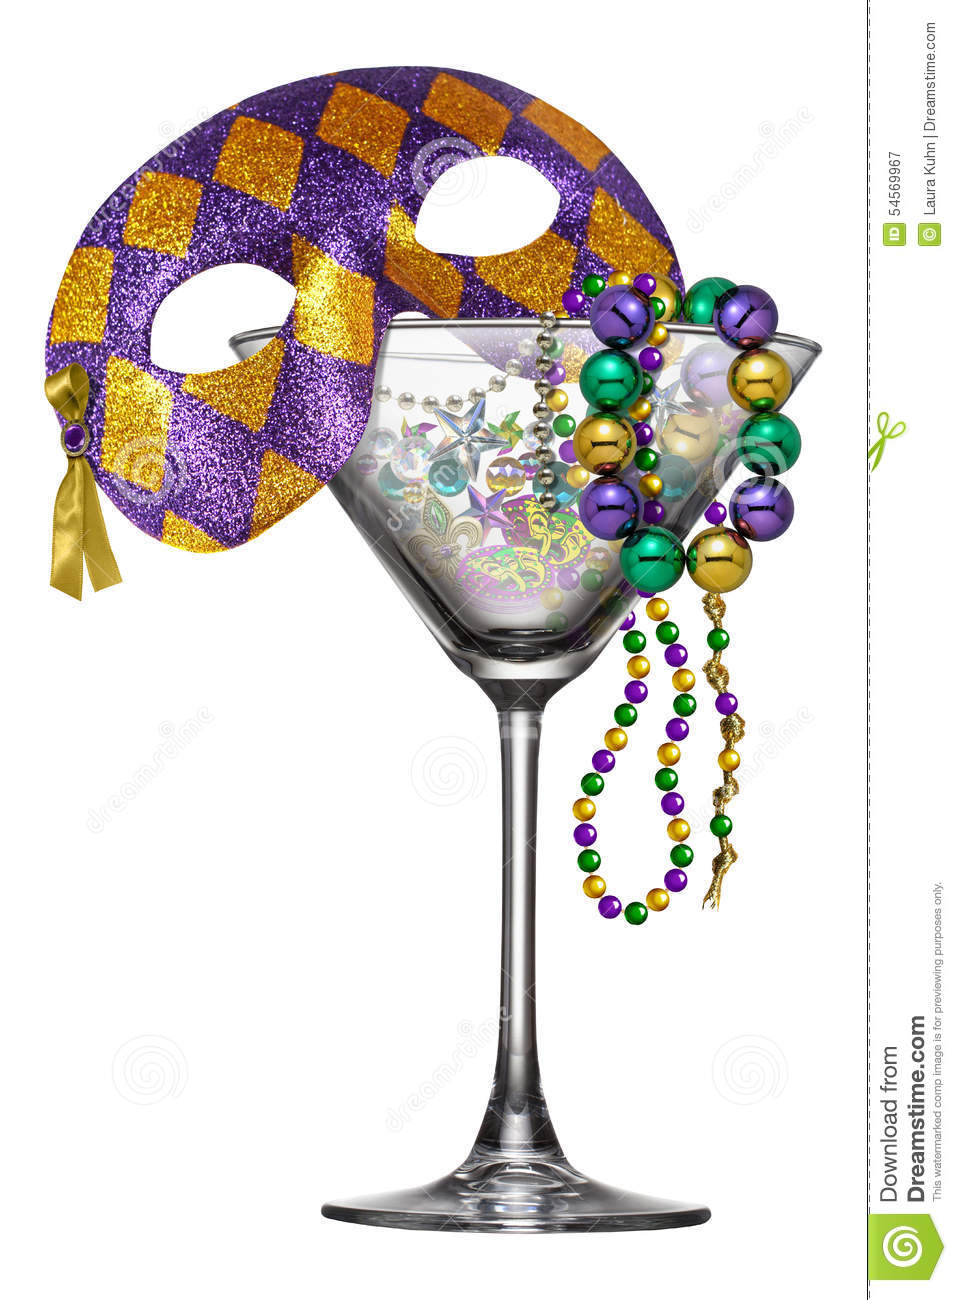 Isolated on white classic New Orleans legendary Mardi Gras martini ...